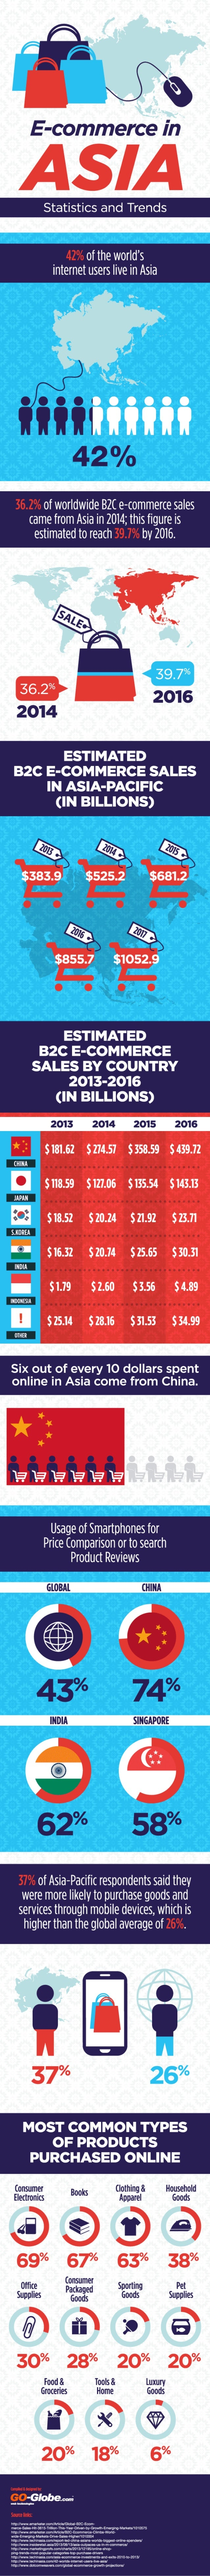 Online Shopping in Asia 2014